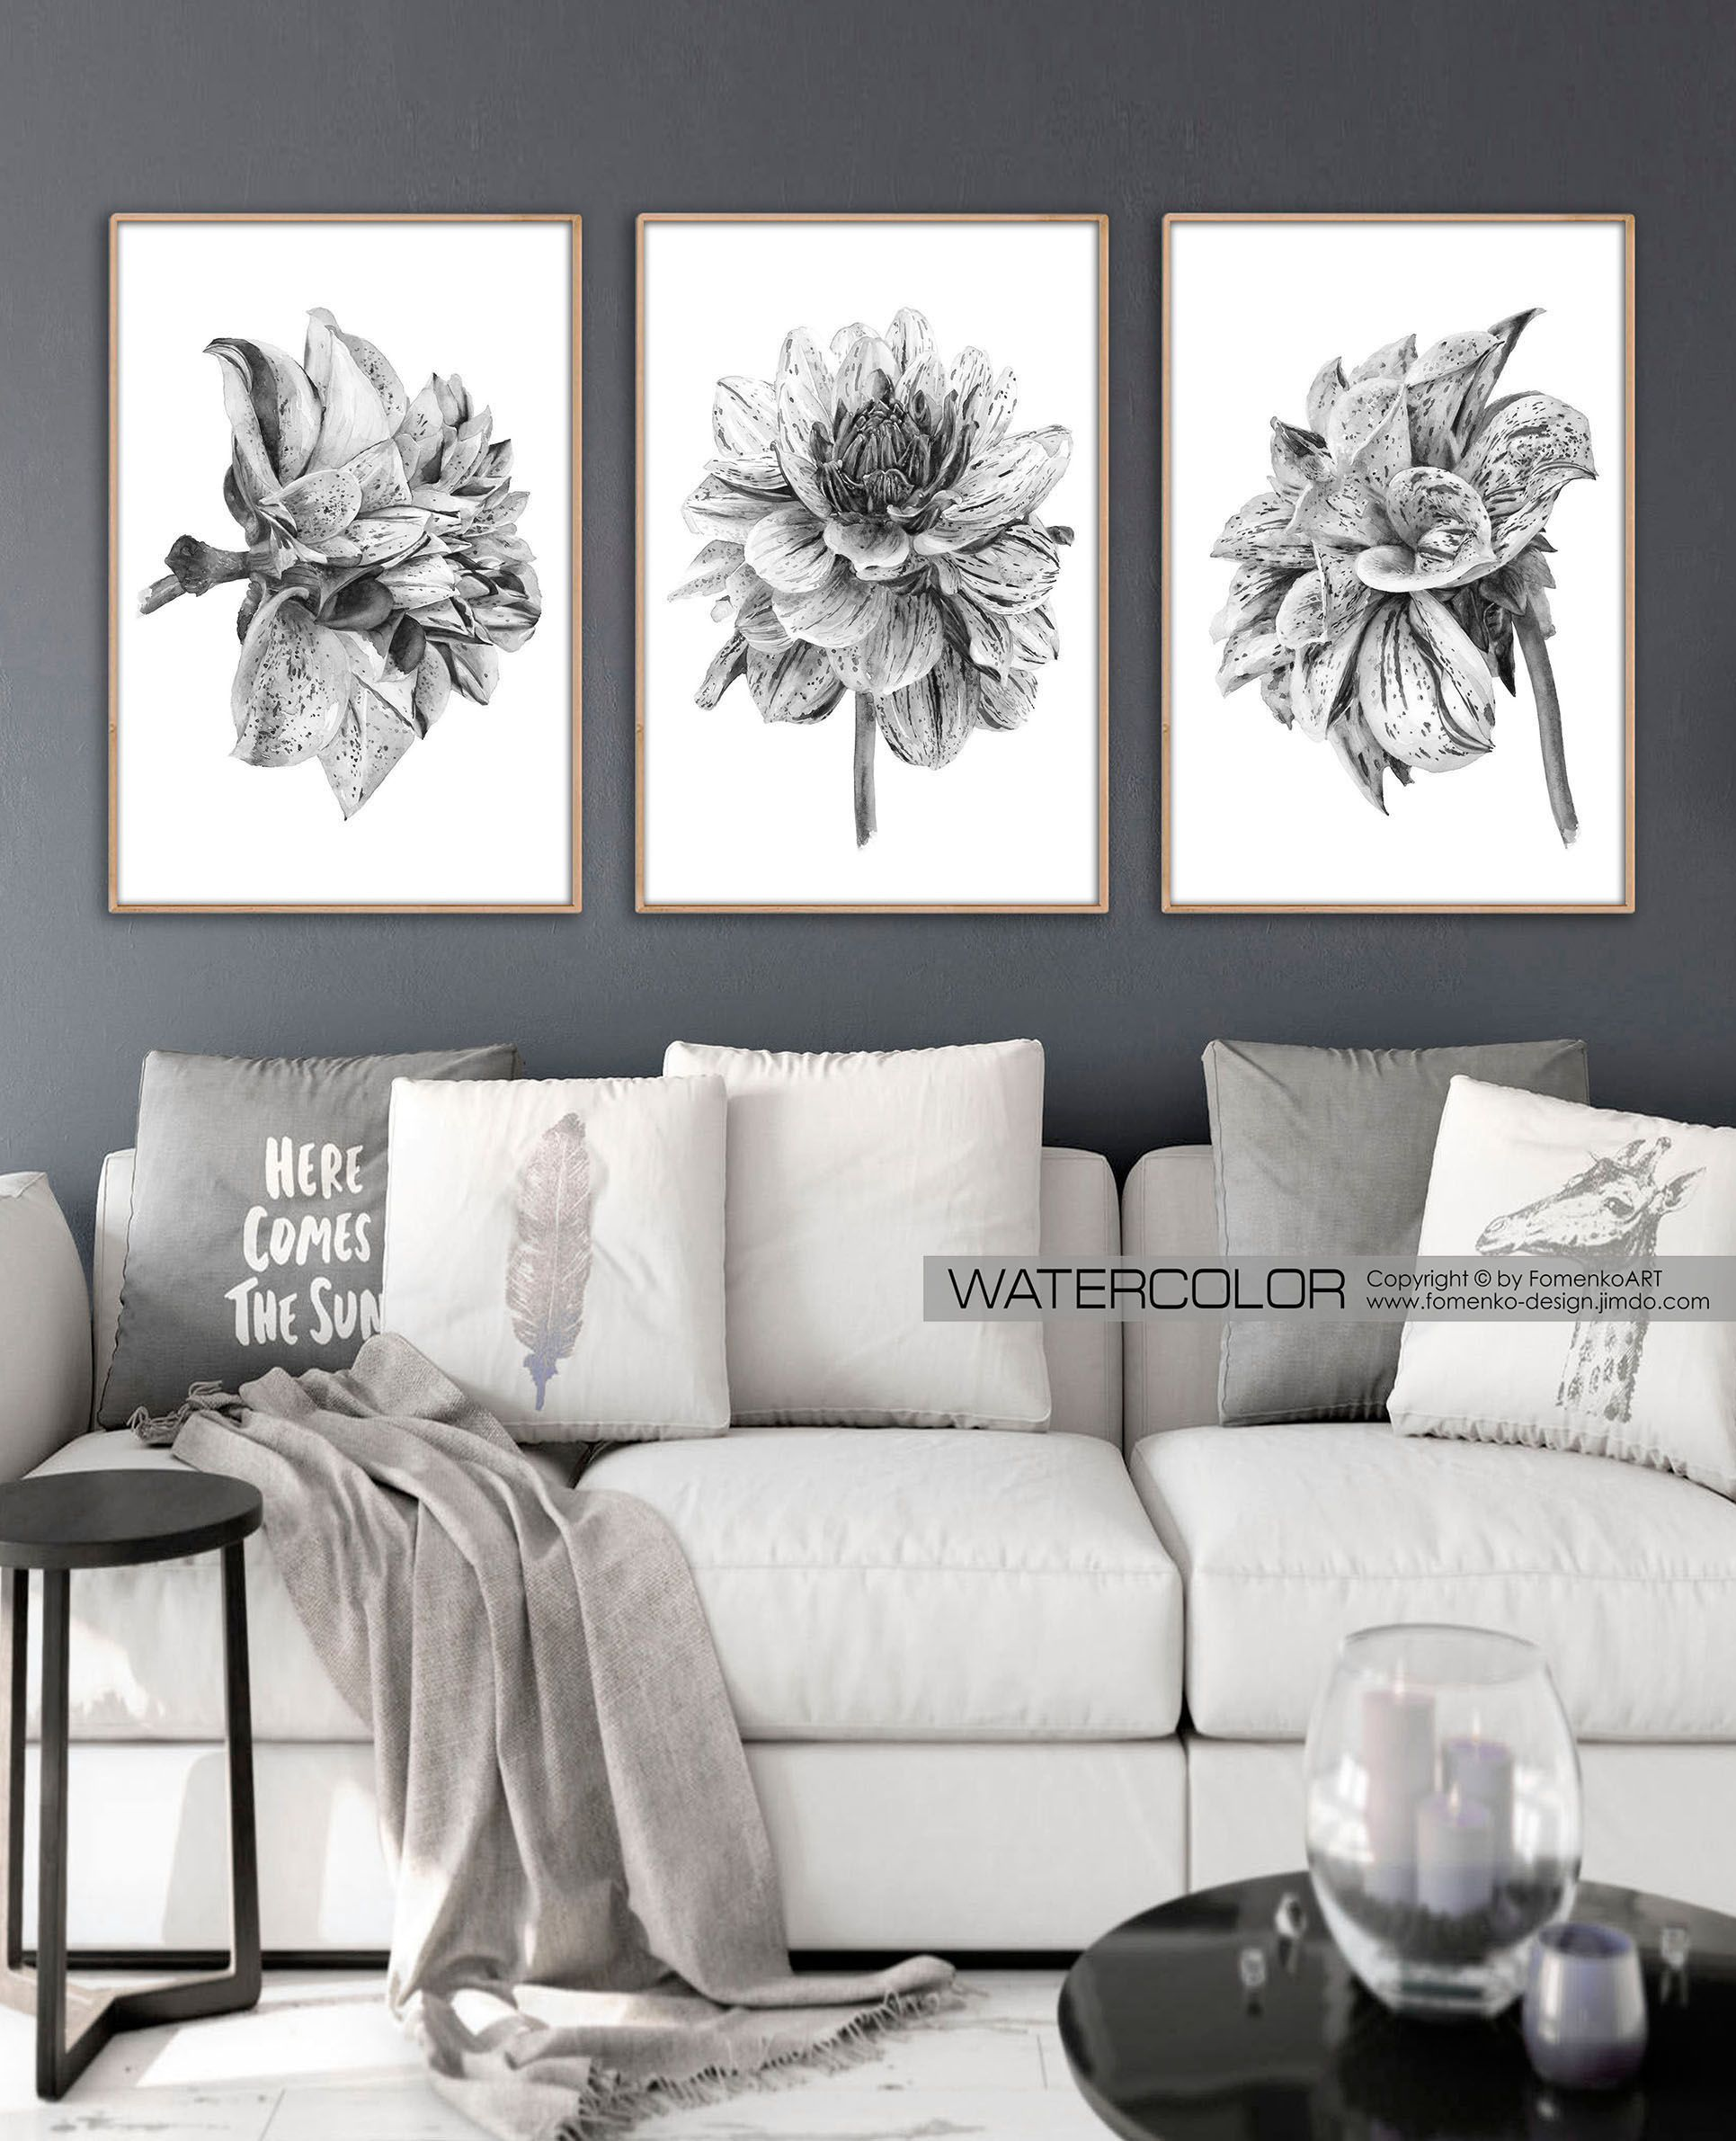 Black And White Artwork For Bedroom Bathroom Wall Decor Farmhouse Decor Boho Decor Black And White